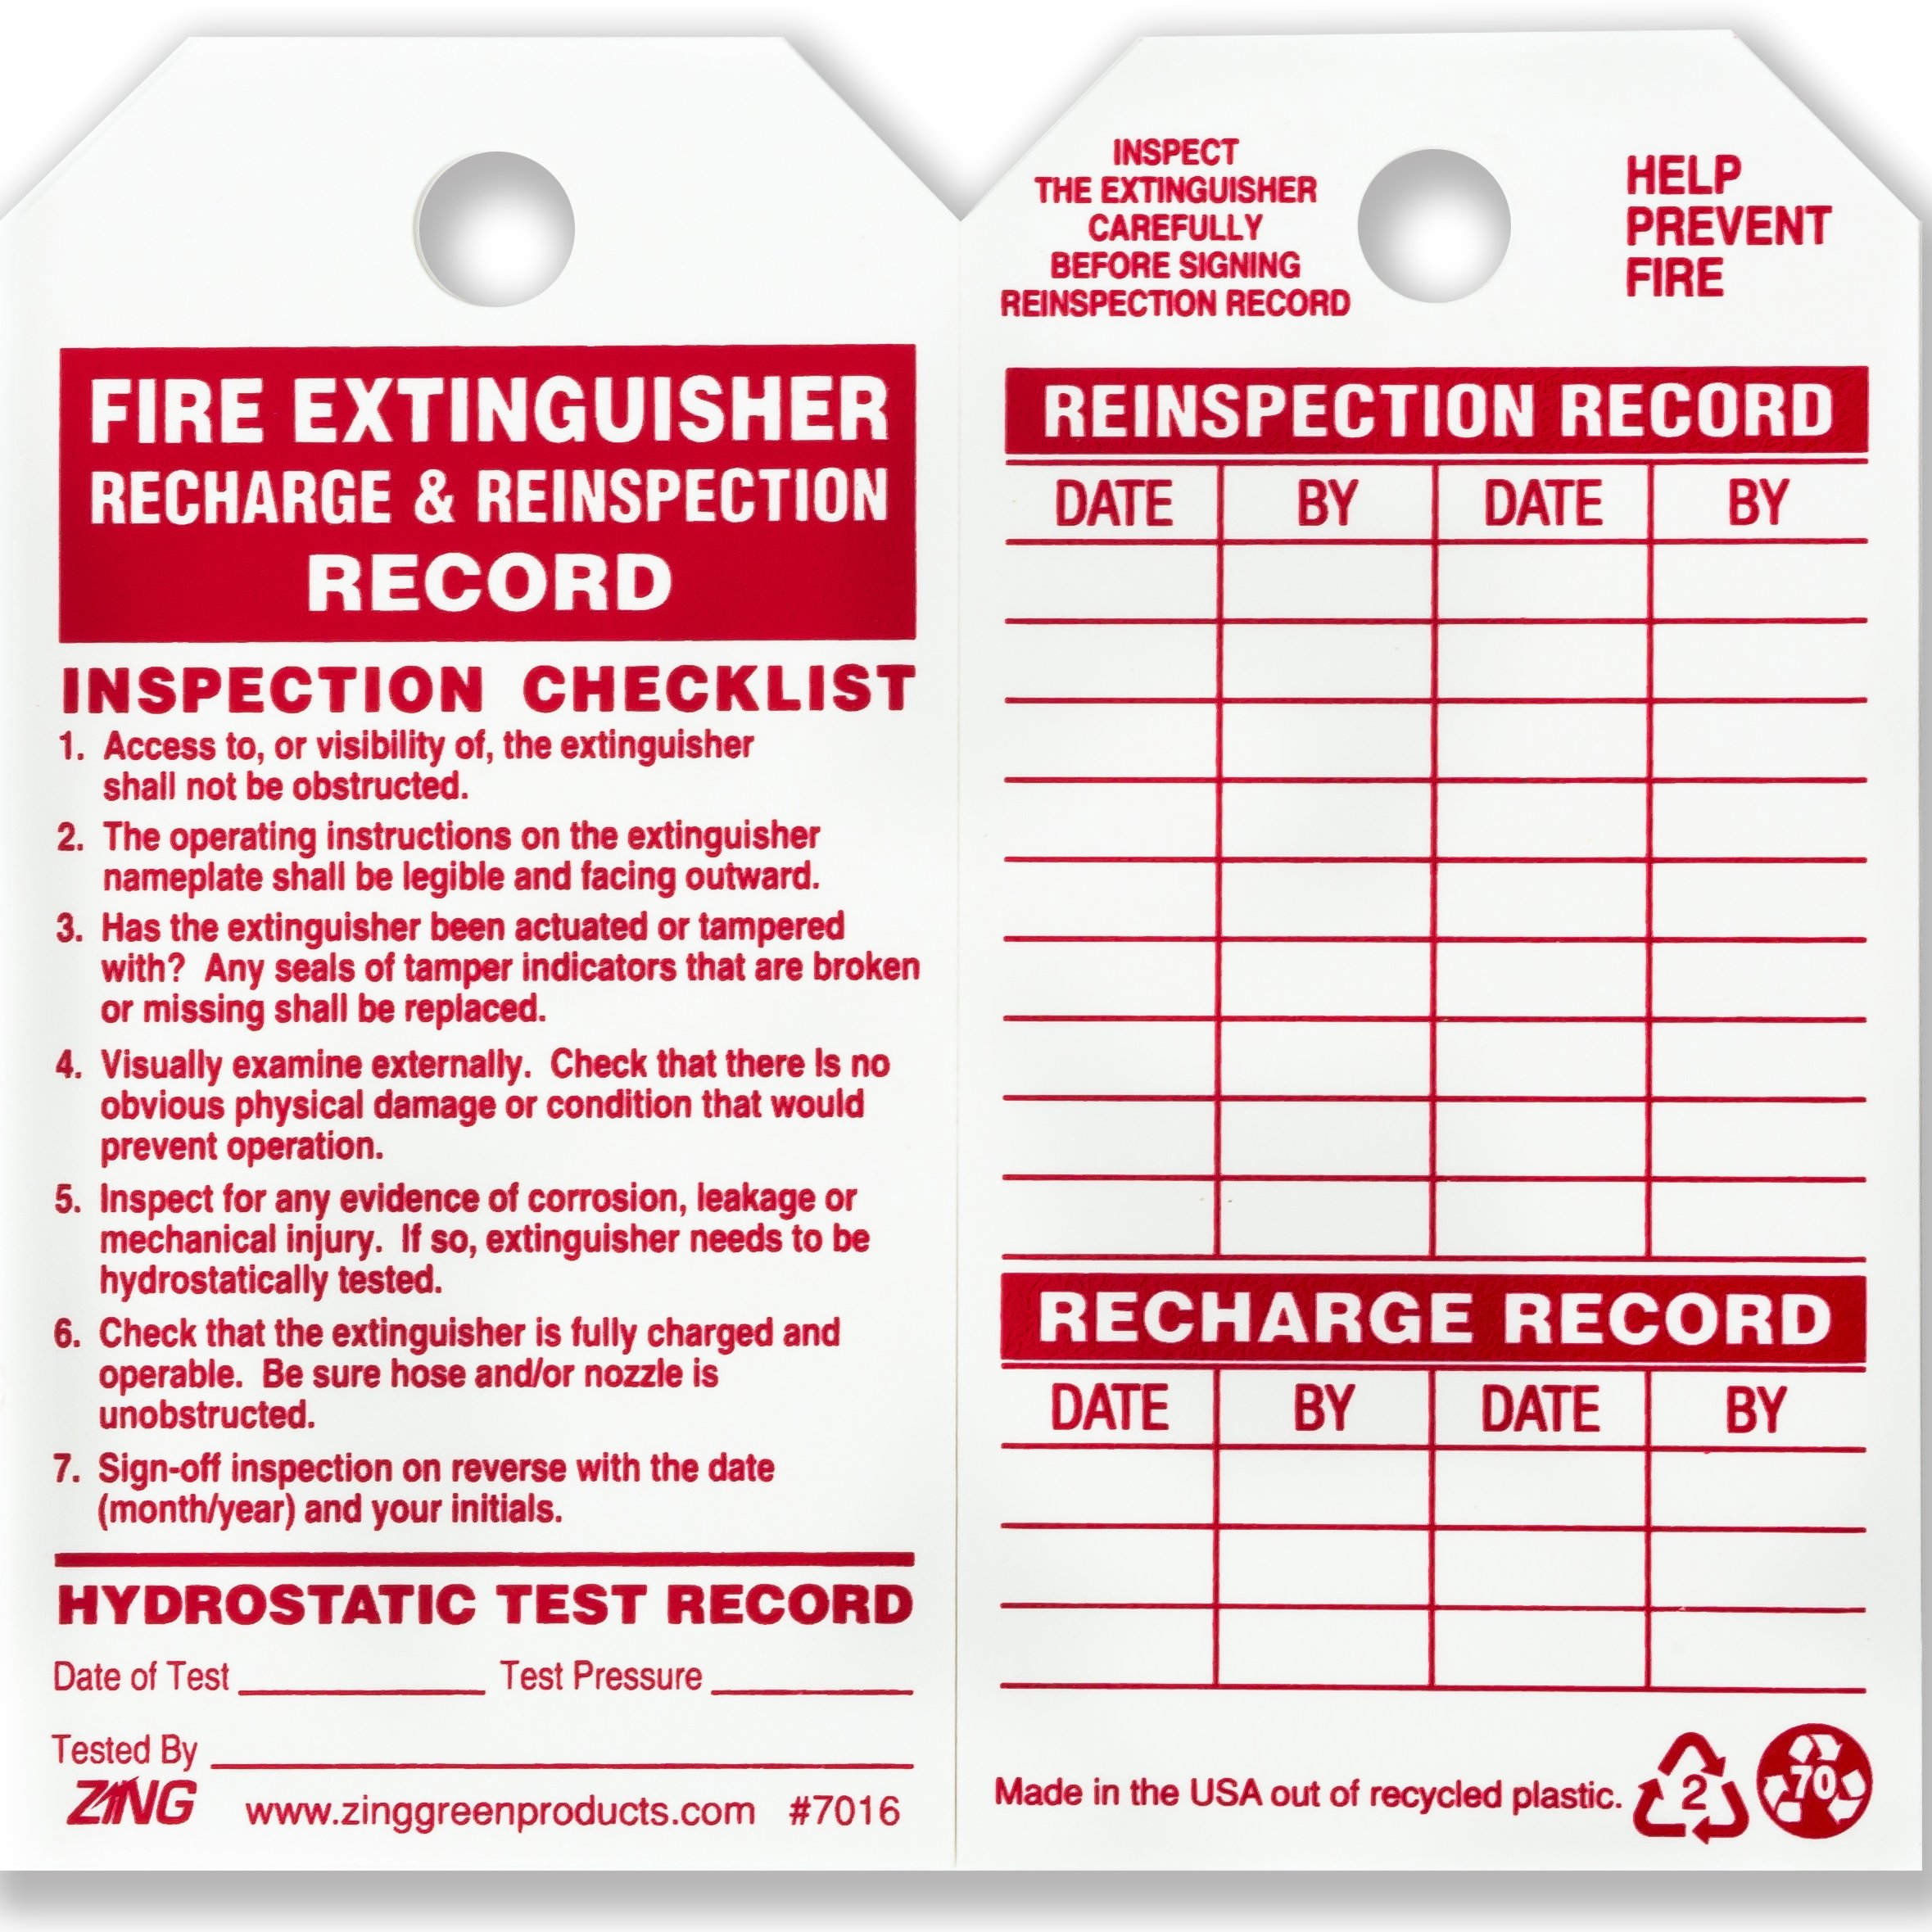 ZING 7016 Eco Safety Tag, Fire Extinguisher, 5.75Hx3W, 10 Pack by Zing Green Products (Image #1)